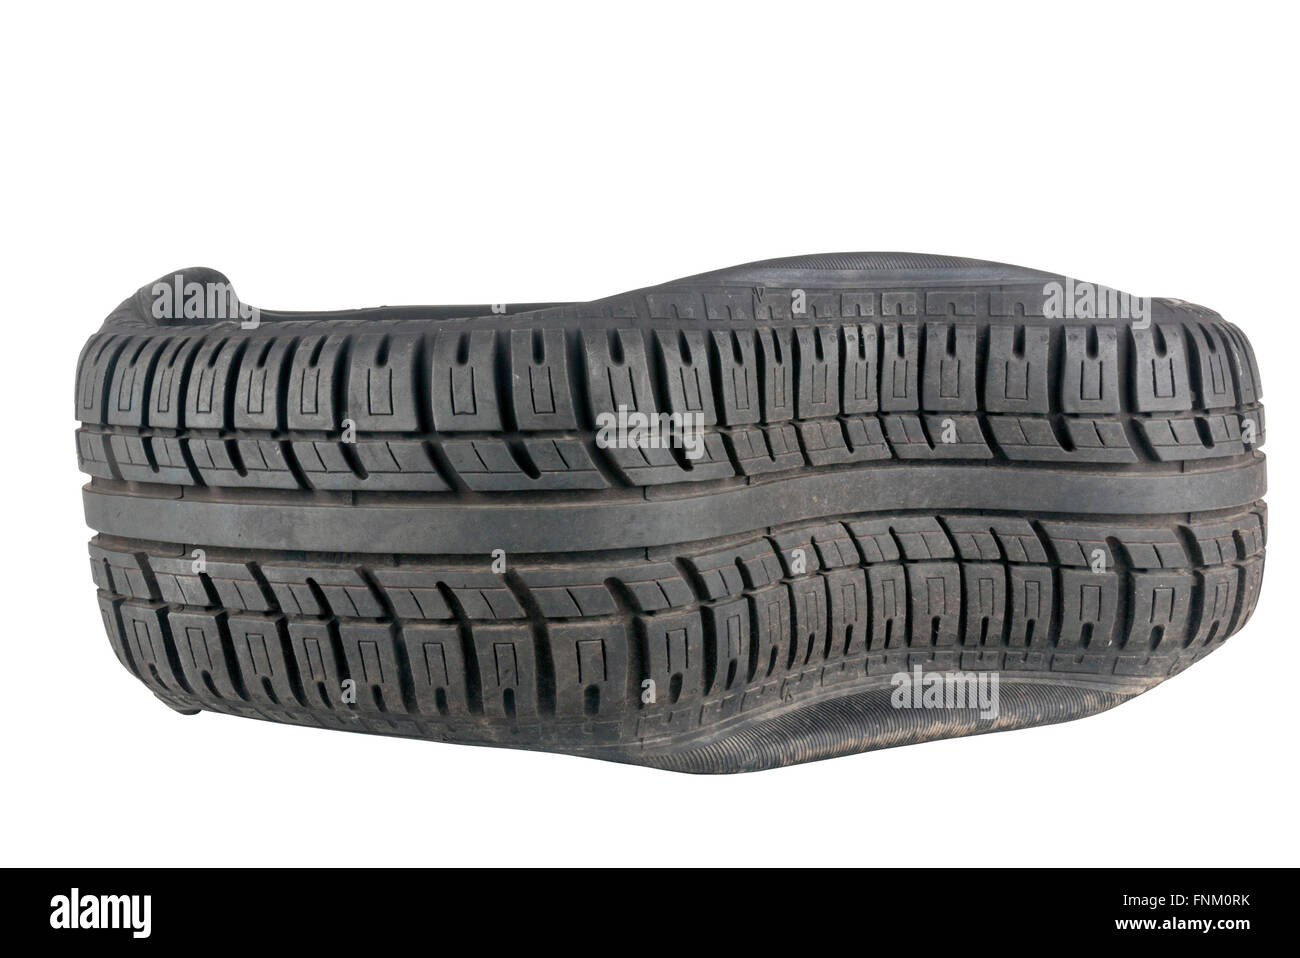 isolated closeup of irregular pattern in tread on tire after a blowout - Stock Image